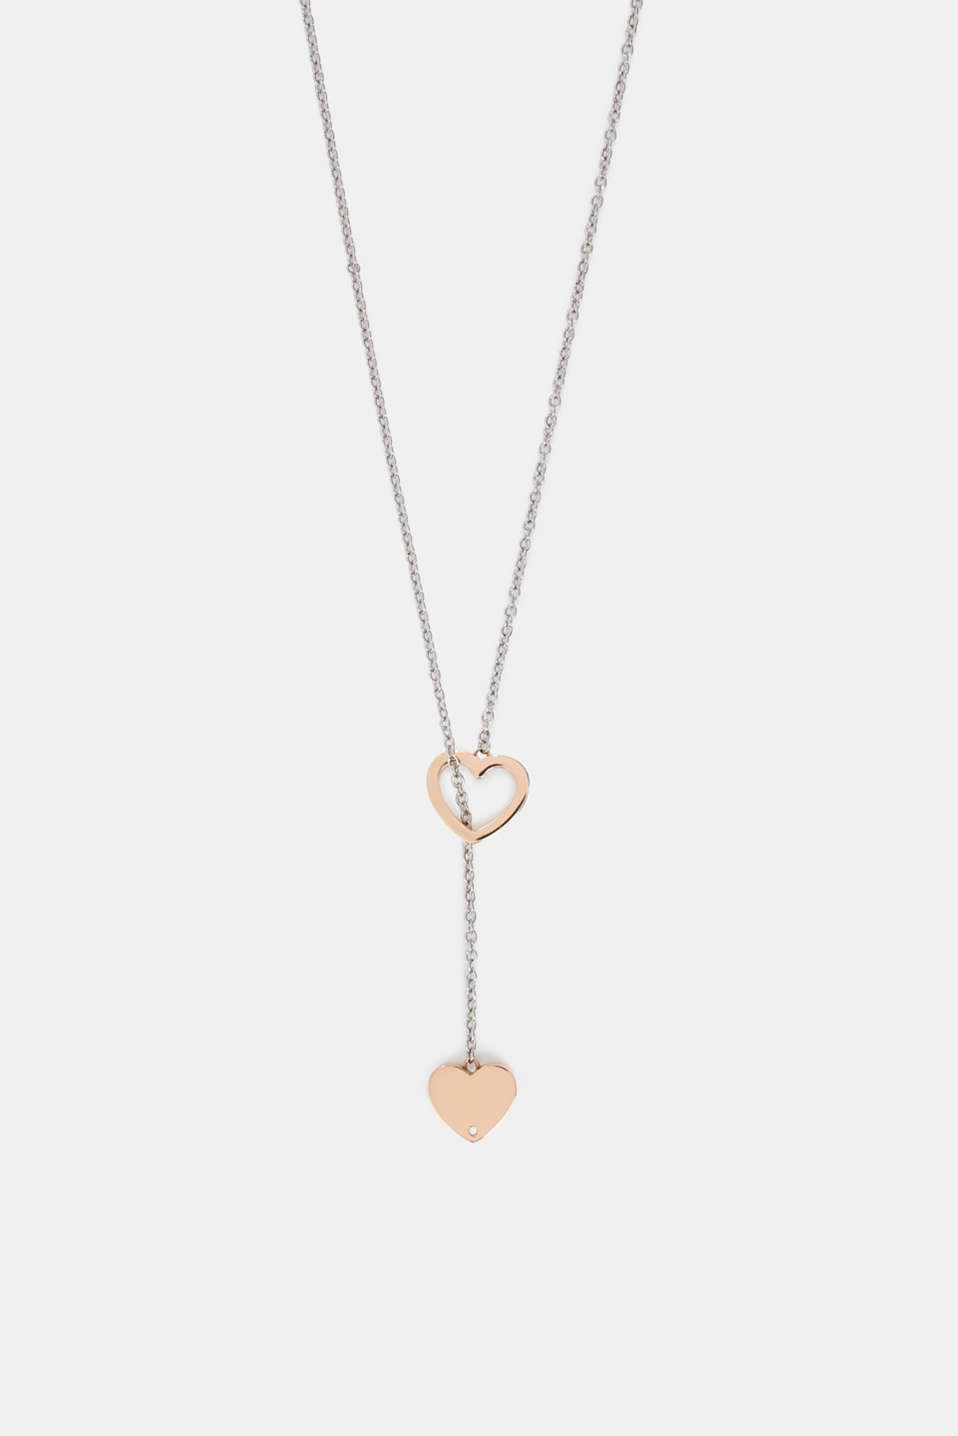 Stainless steel pendant necklace with heart charms, ROSEGOLD, detail image number 0